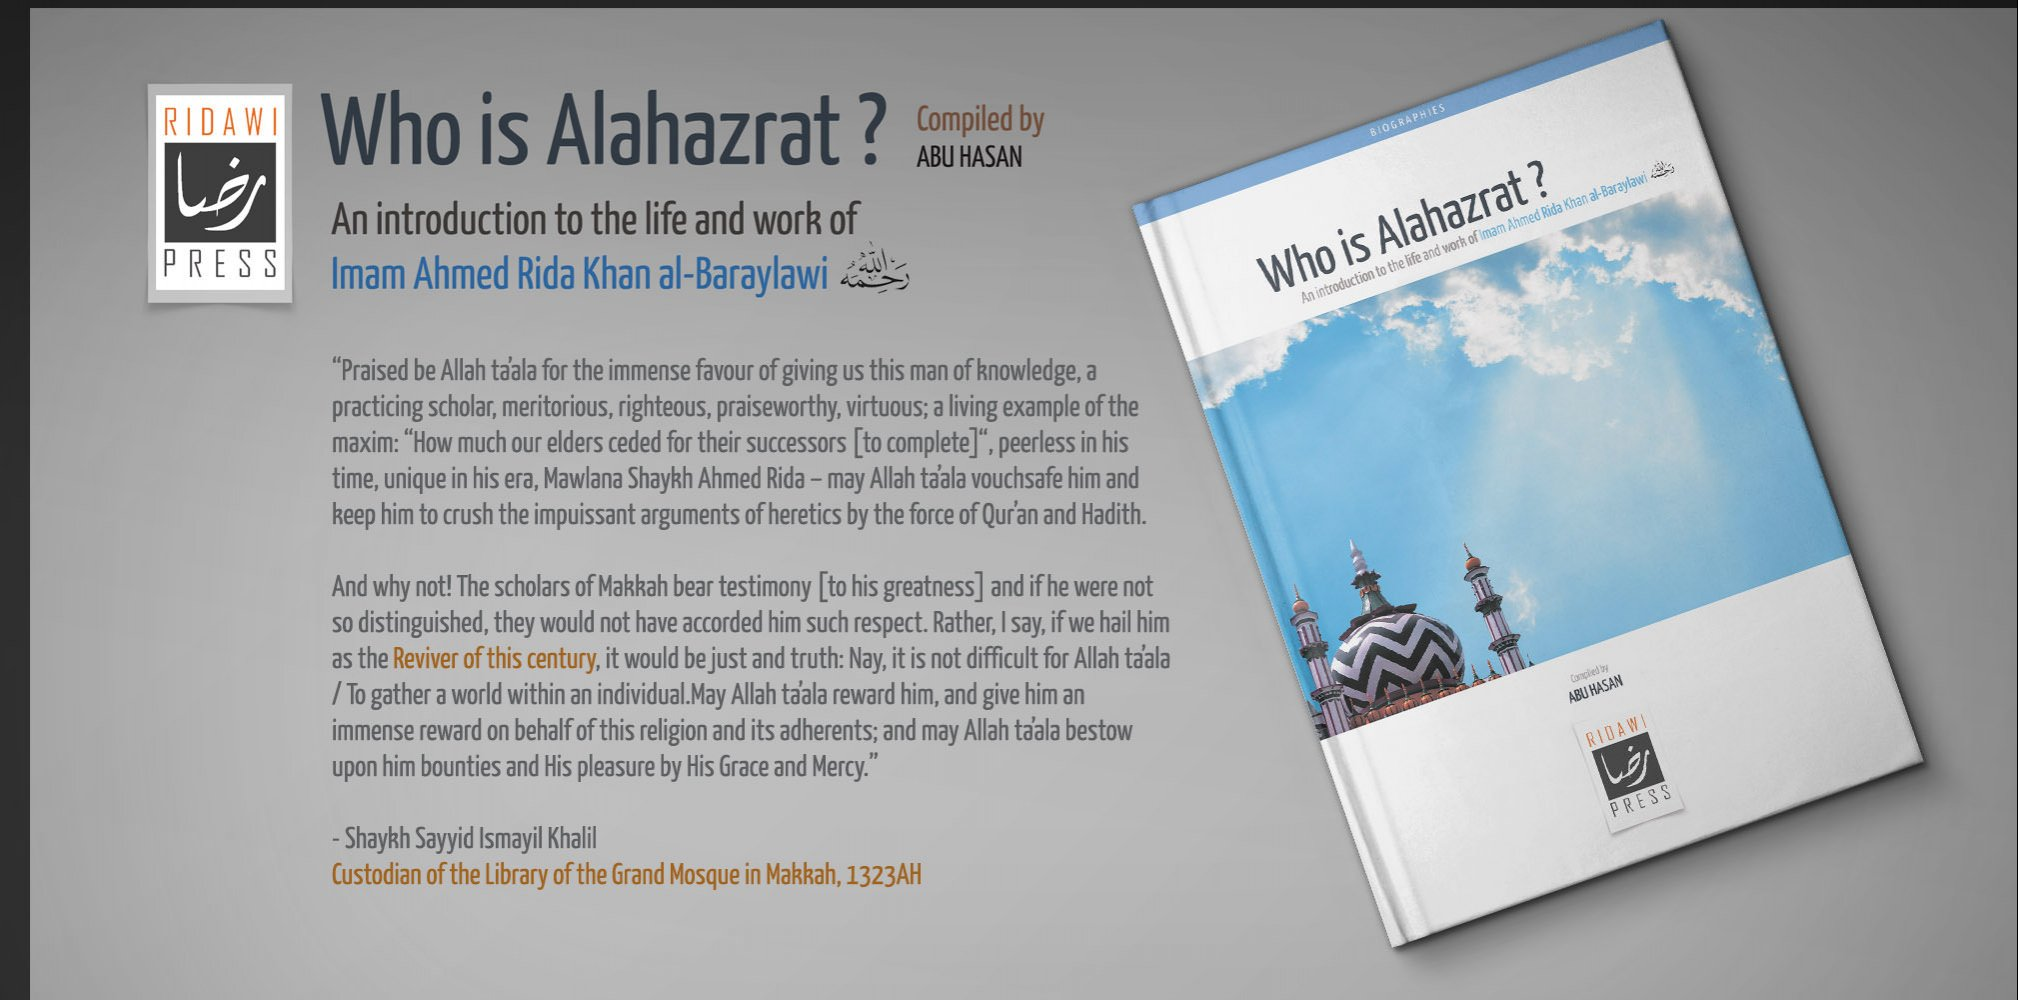 Book Release: Who is Alahazrat?